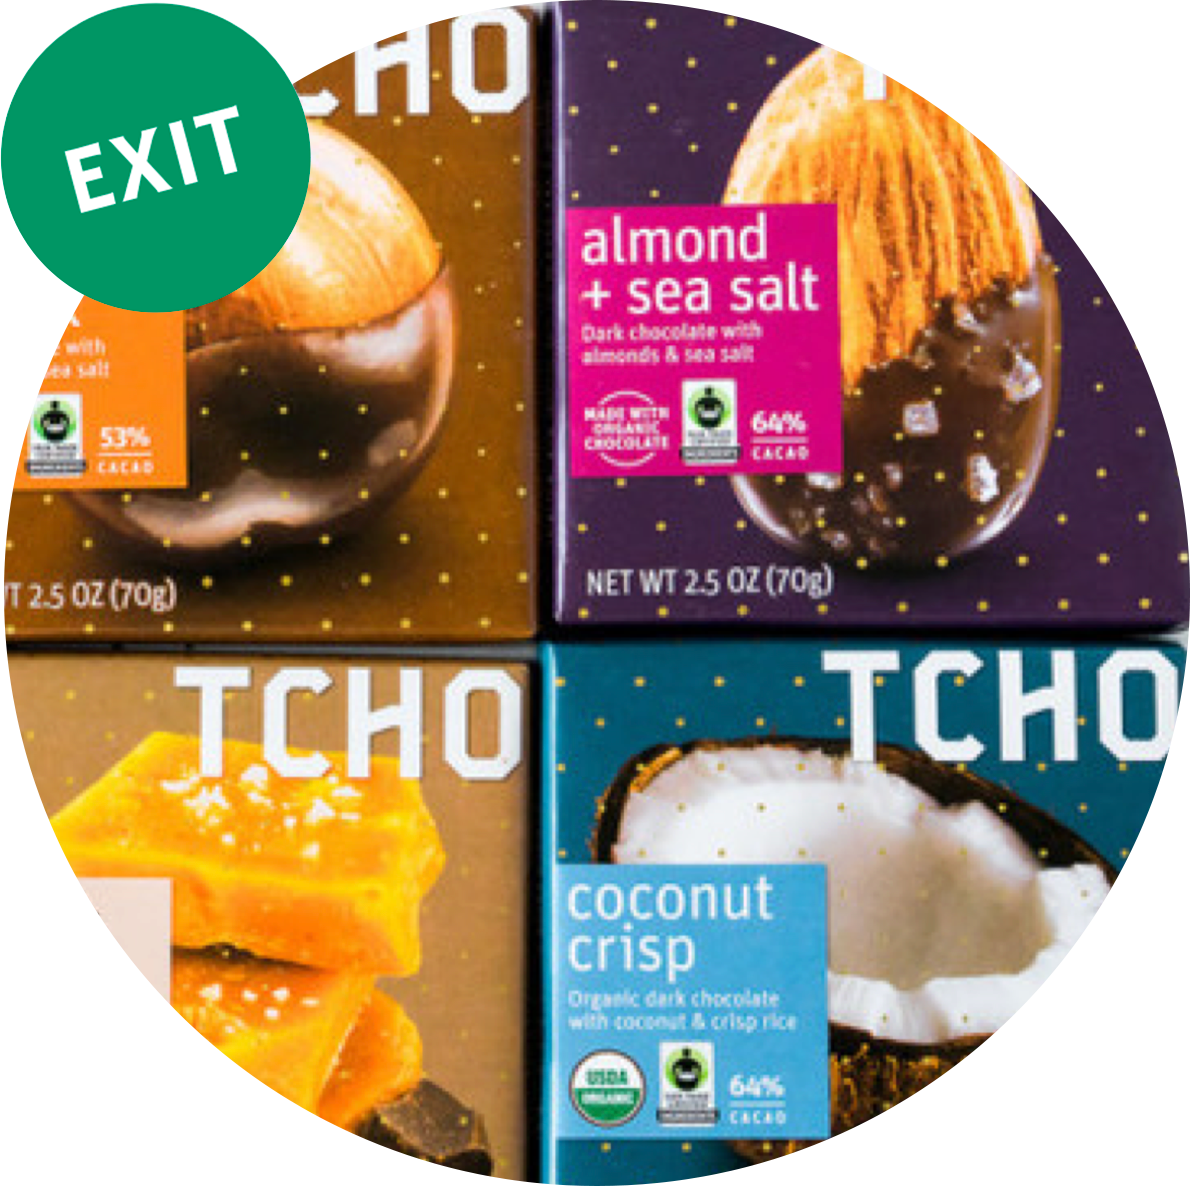 Ezaki Glico Acquires TCHO, U.S. Chocolate Maker